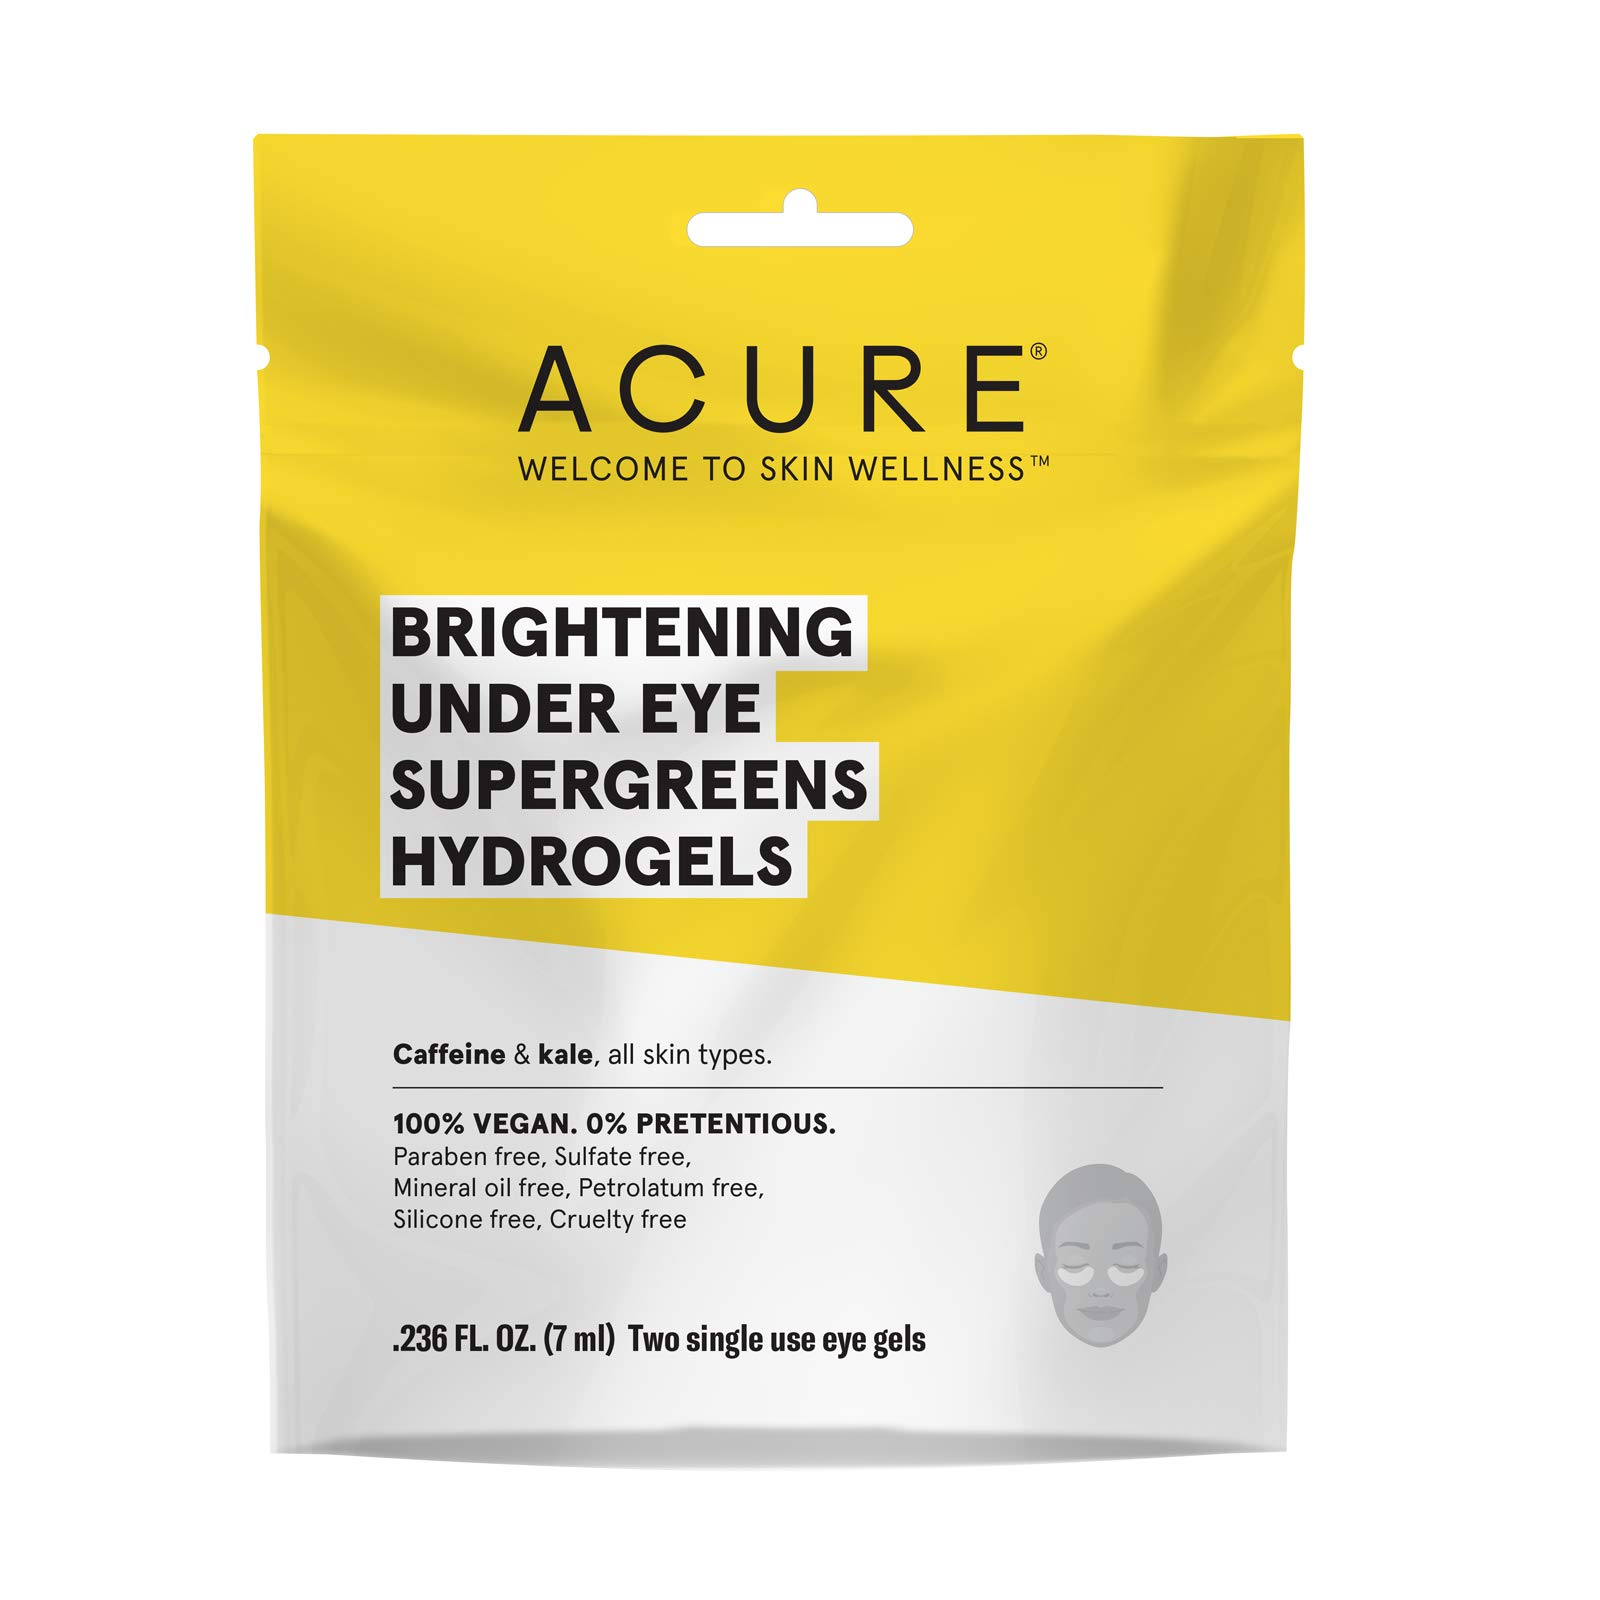 Acure Hydrogels, Brightening Under Eye Super Greens, 12 Count